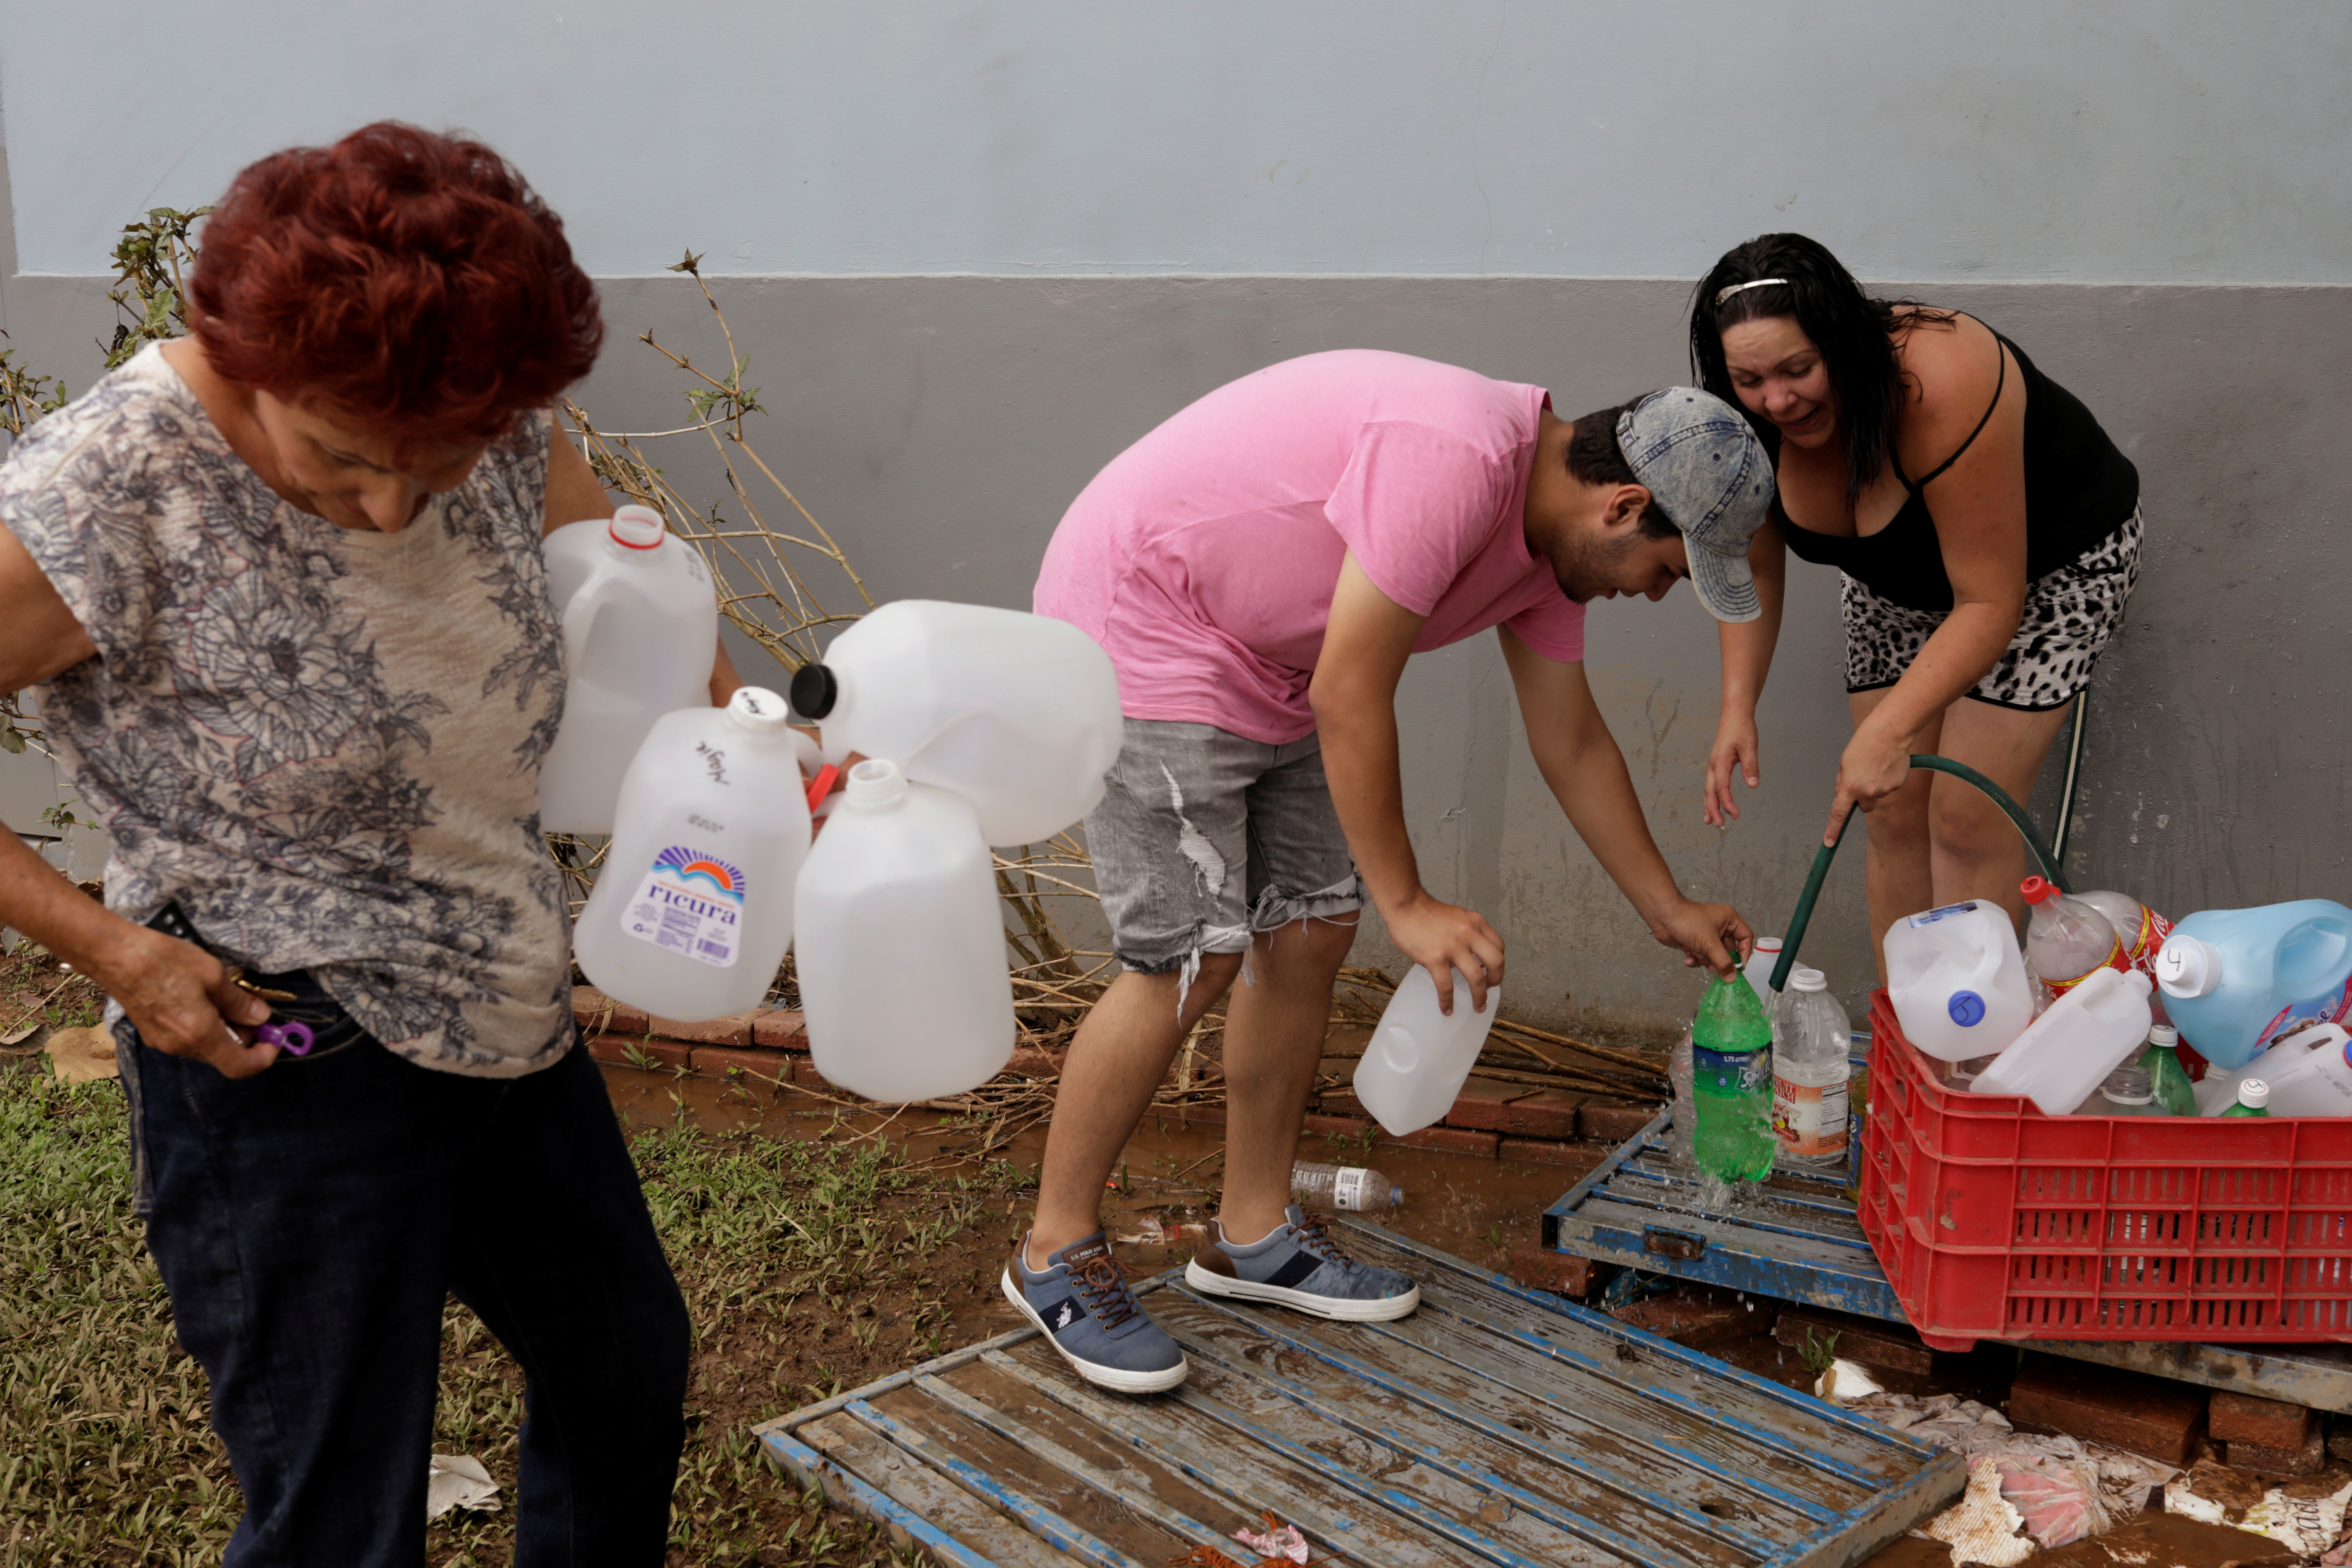 Residents use a water faucet on the side of a building to fill water jugs due to lack of water service following Hurricane Maria